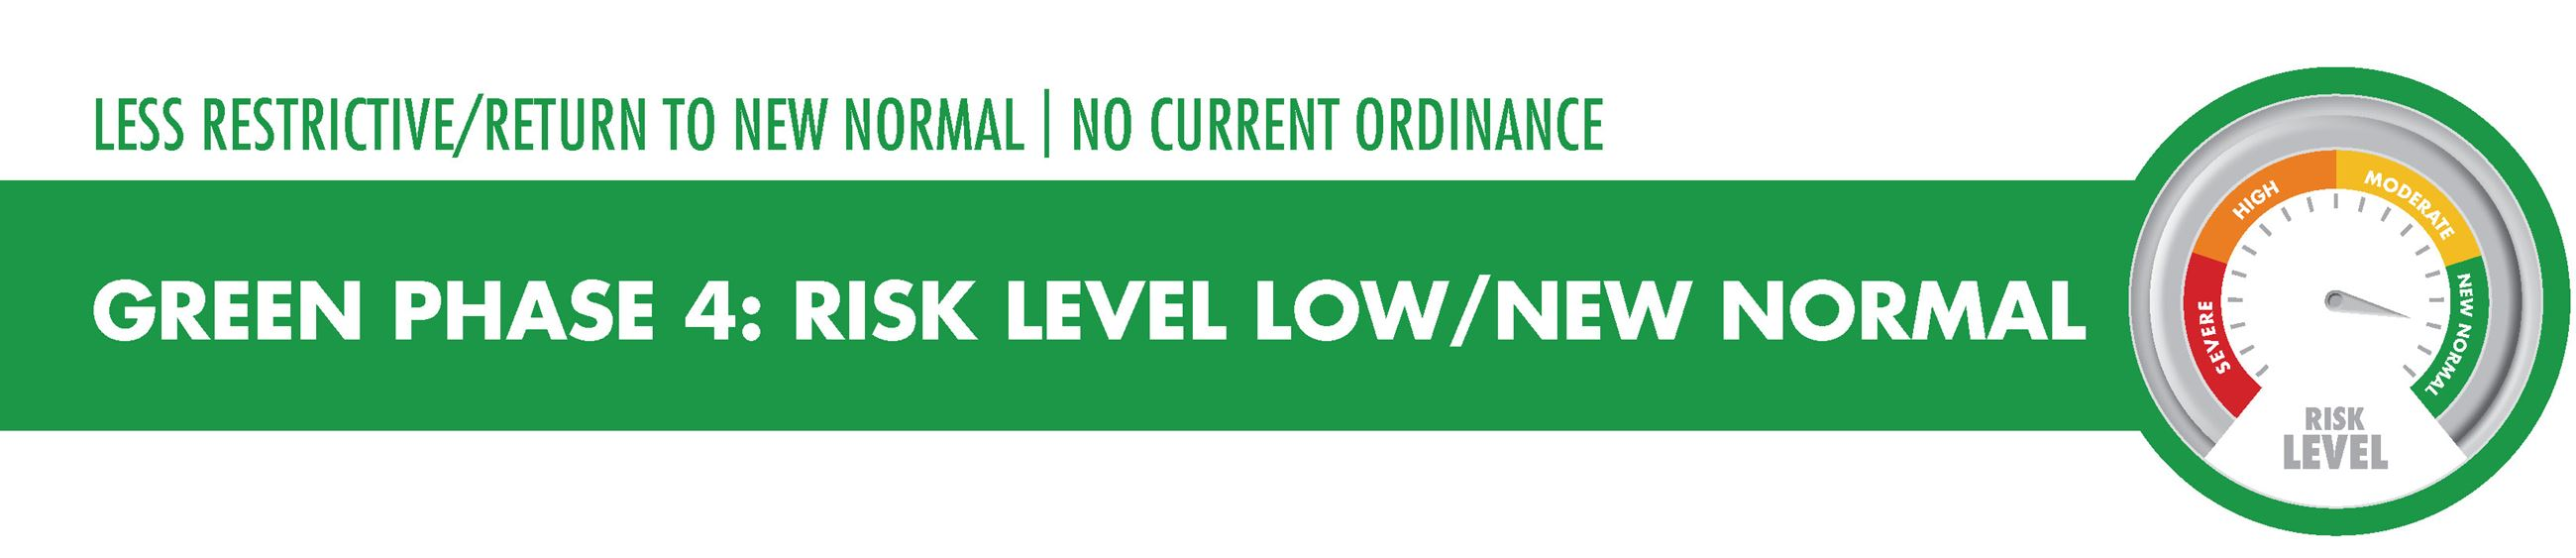 Less restrictive return to new normal no current ordinance Current Covid 19 Green Phase 4 New Normal